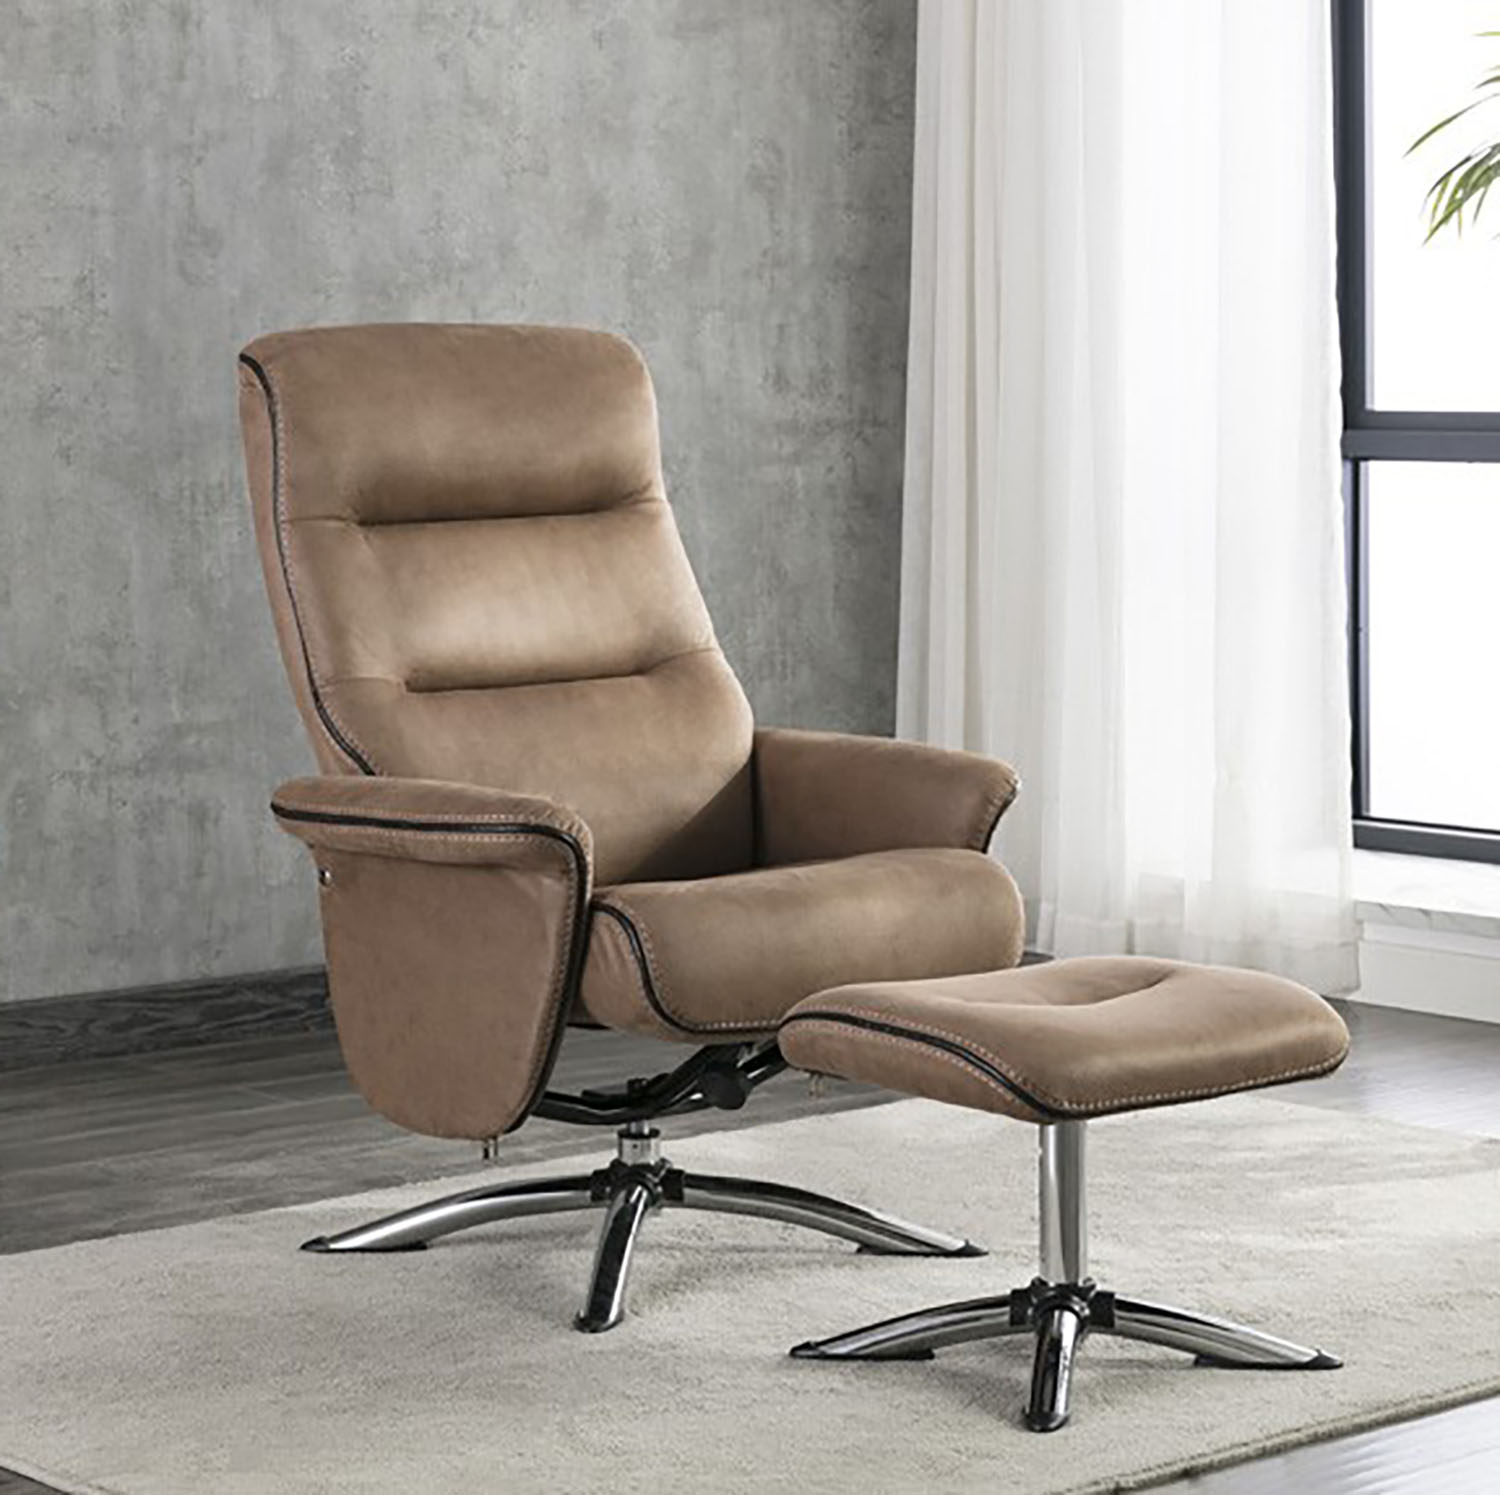 Turin Swivel Recliner and Stool - Caramel